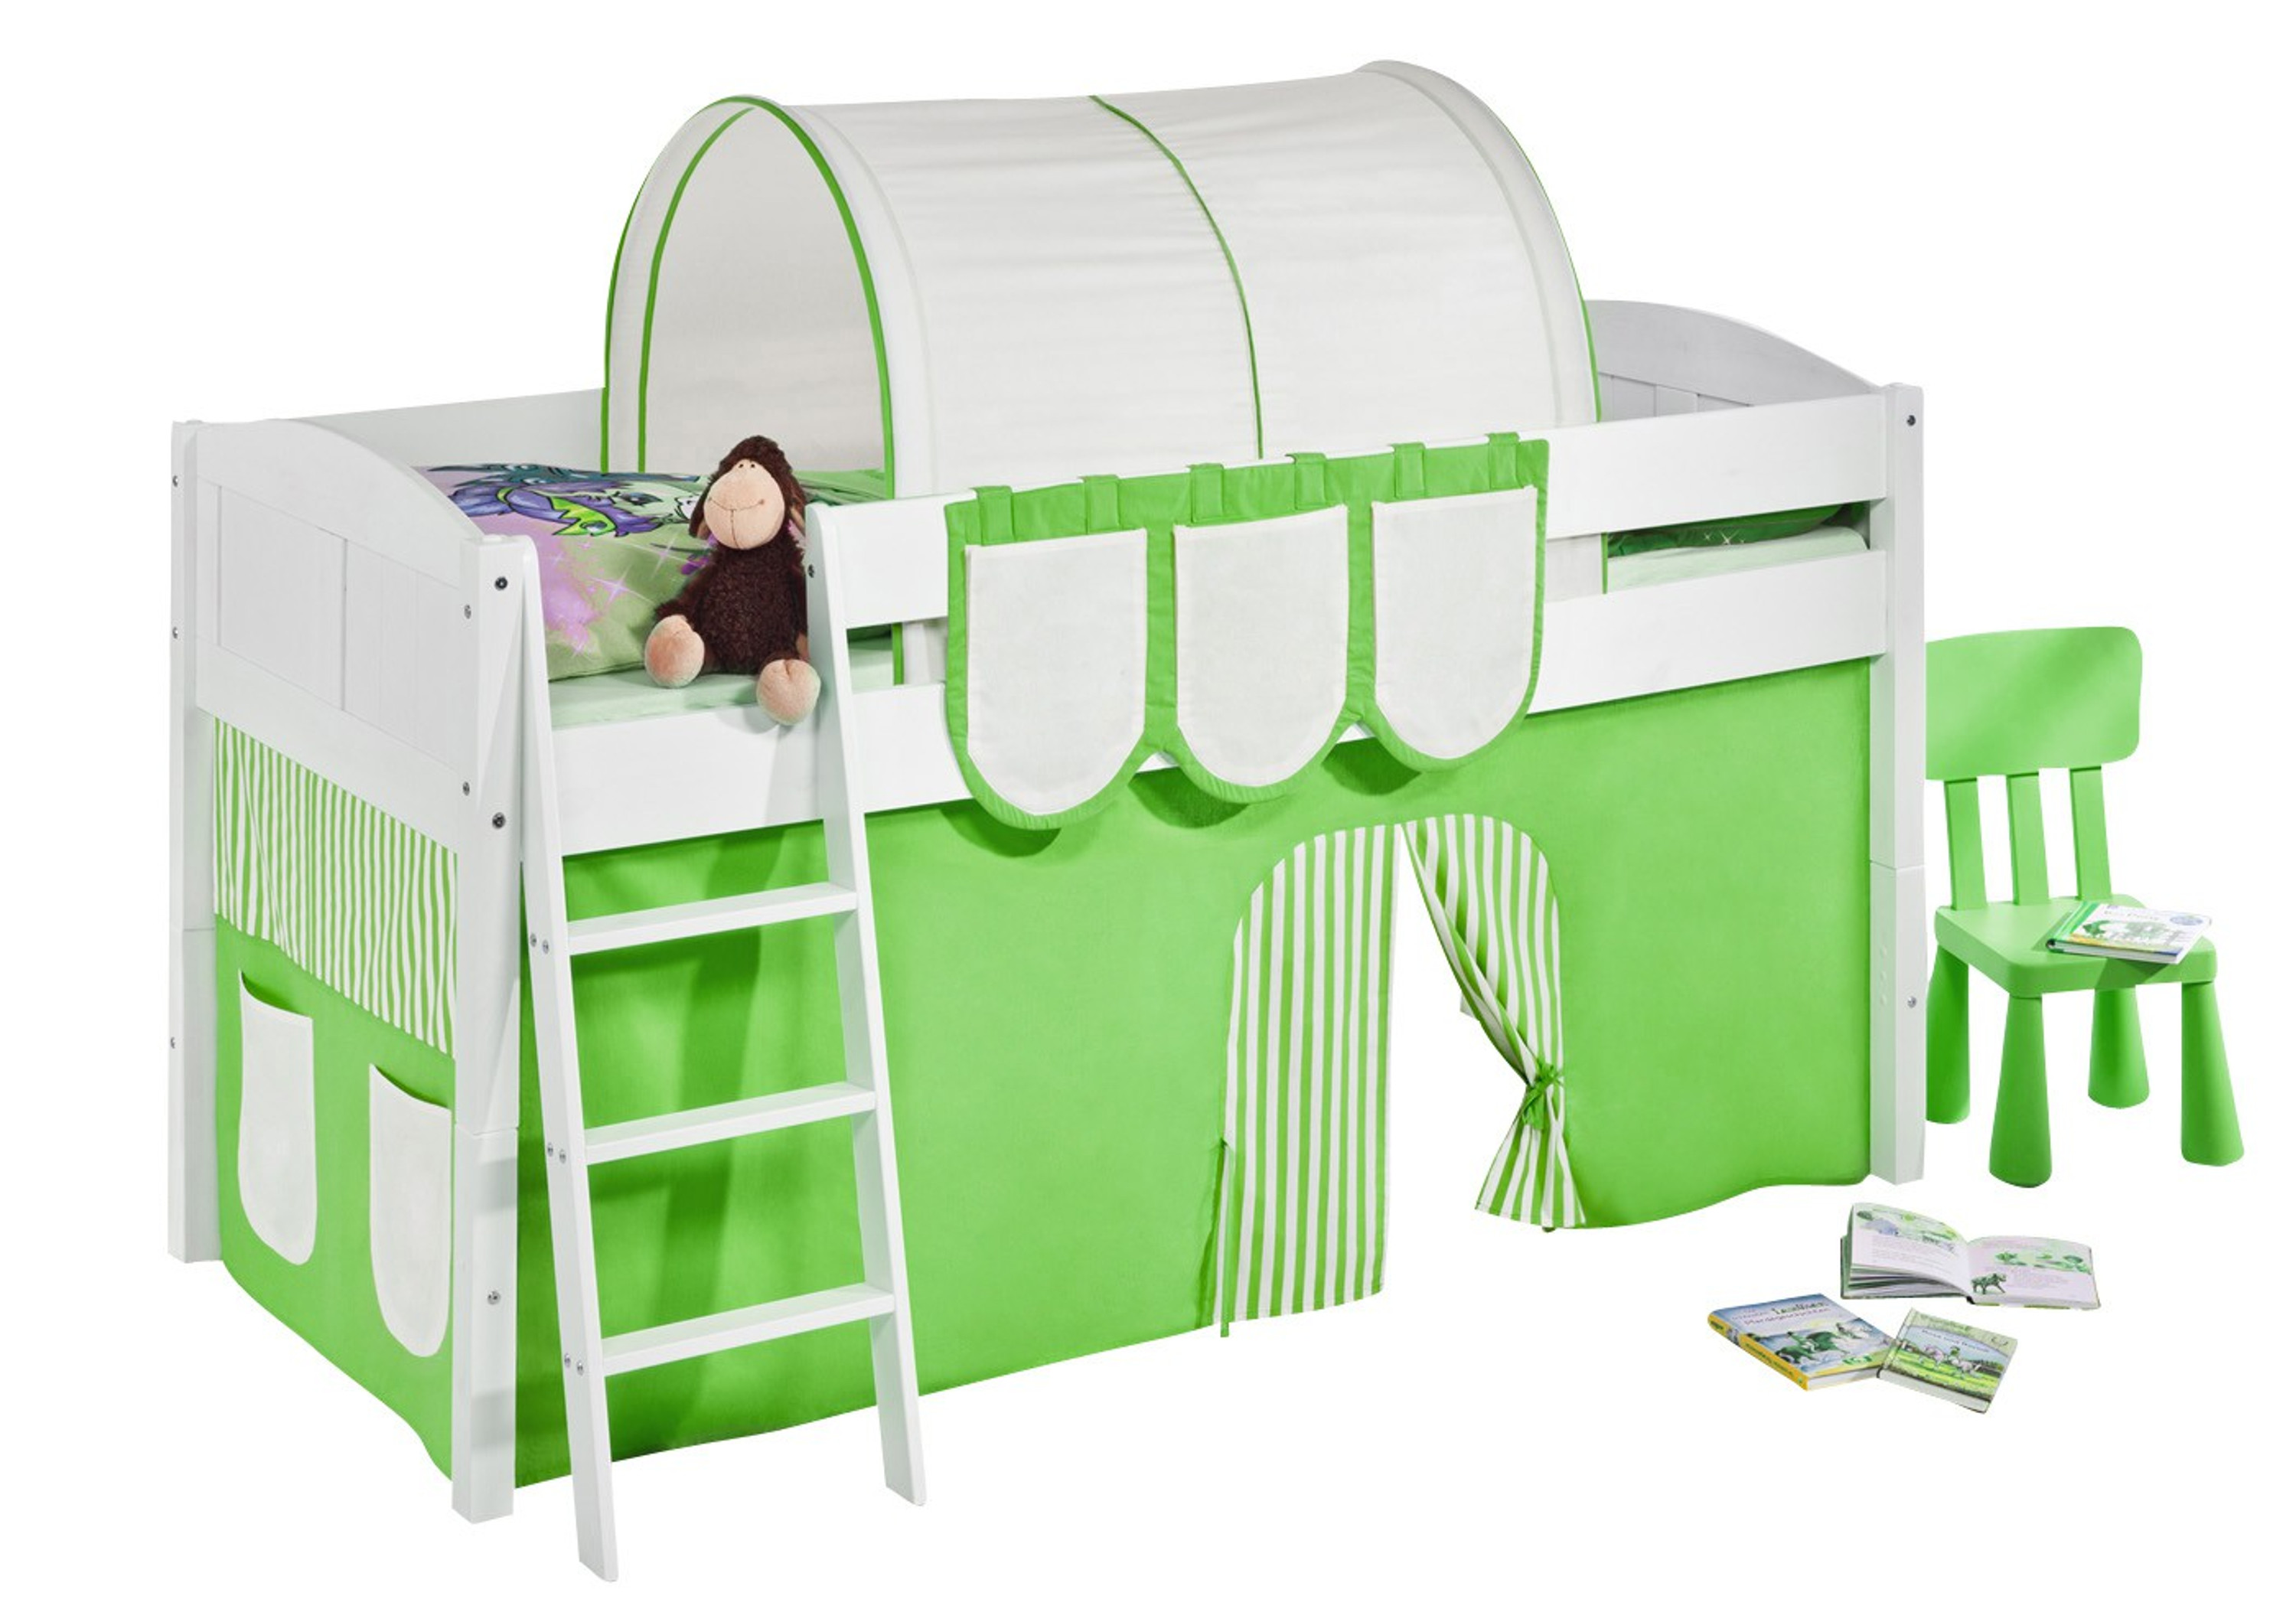 spielbett gr n beige wei mit vorhang 4106 m bel baby kinderzimmer hochbetten. Black Bedroom Furniture Sets. Home Design Ideas